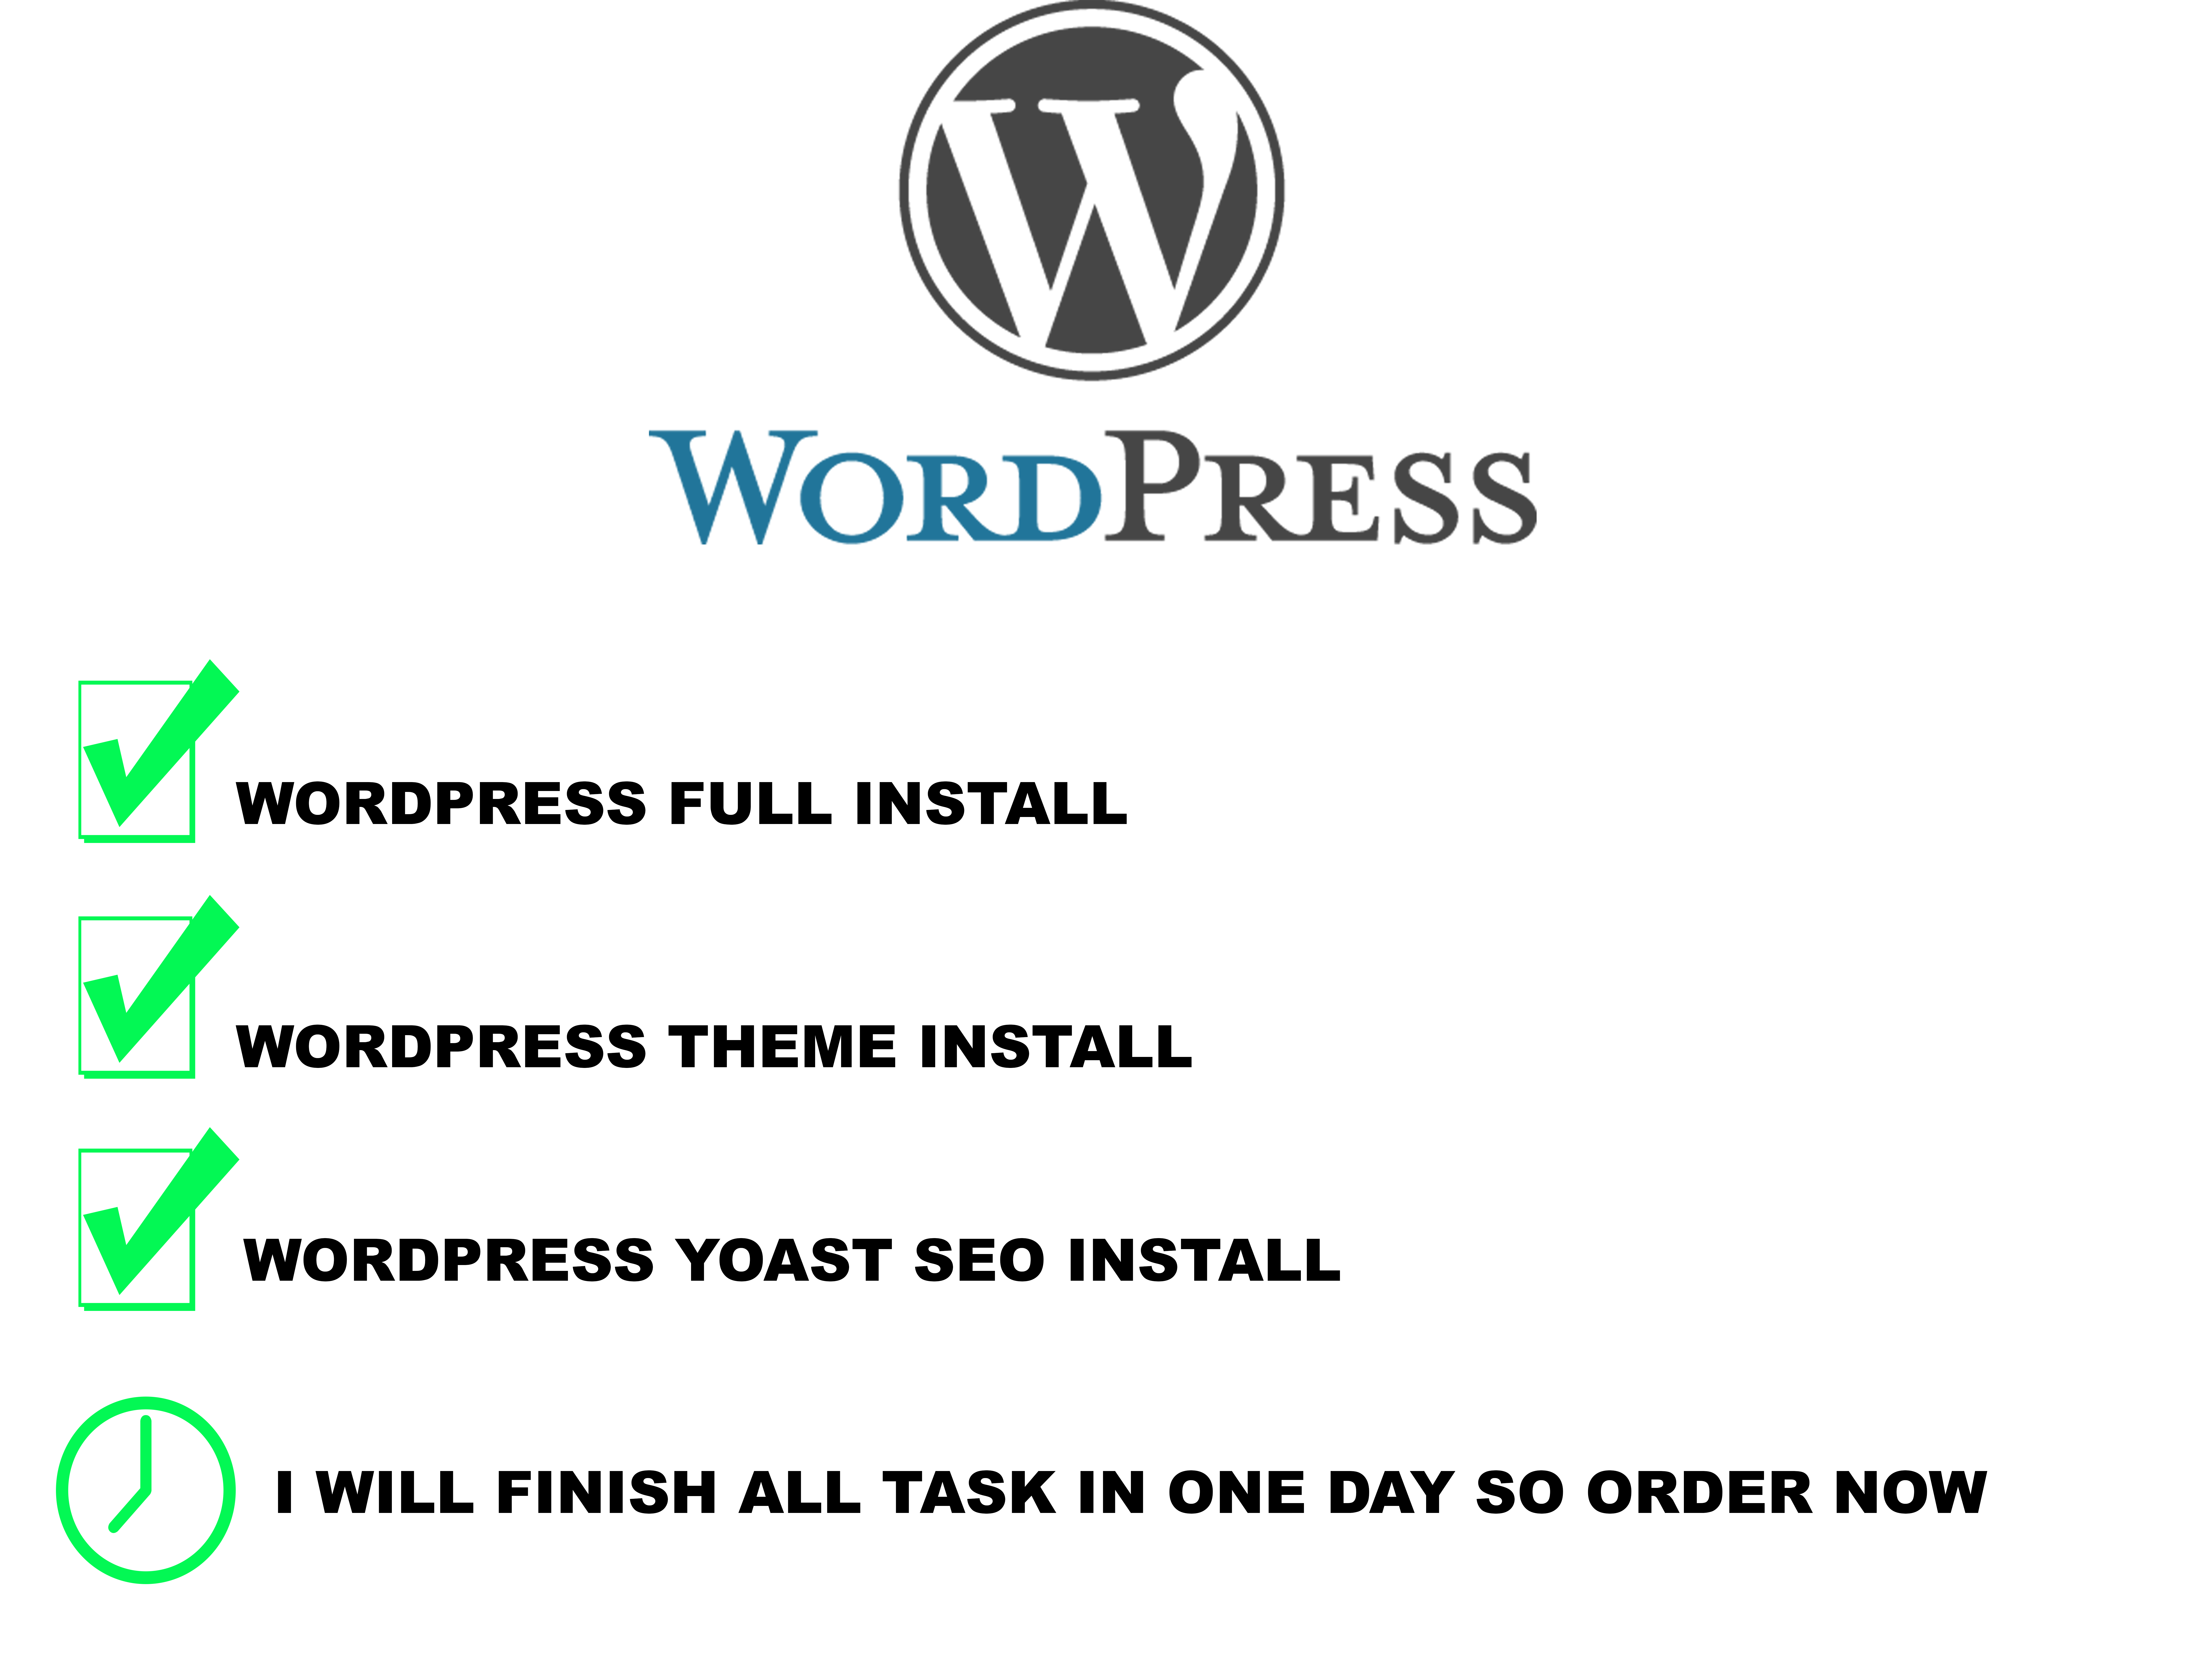 I provide you wordpress support